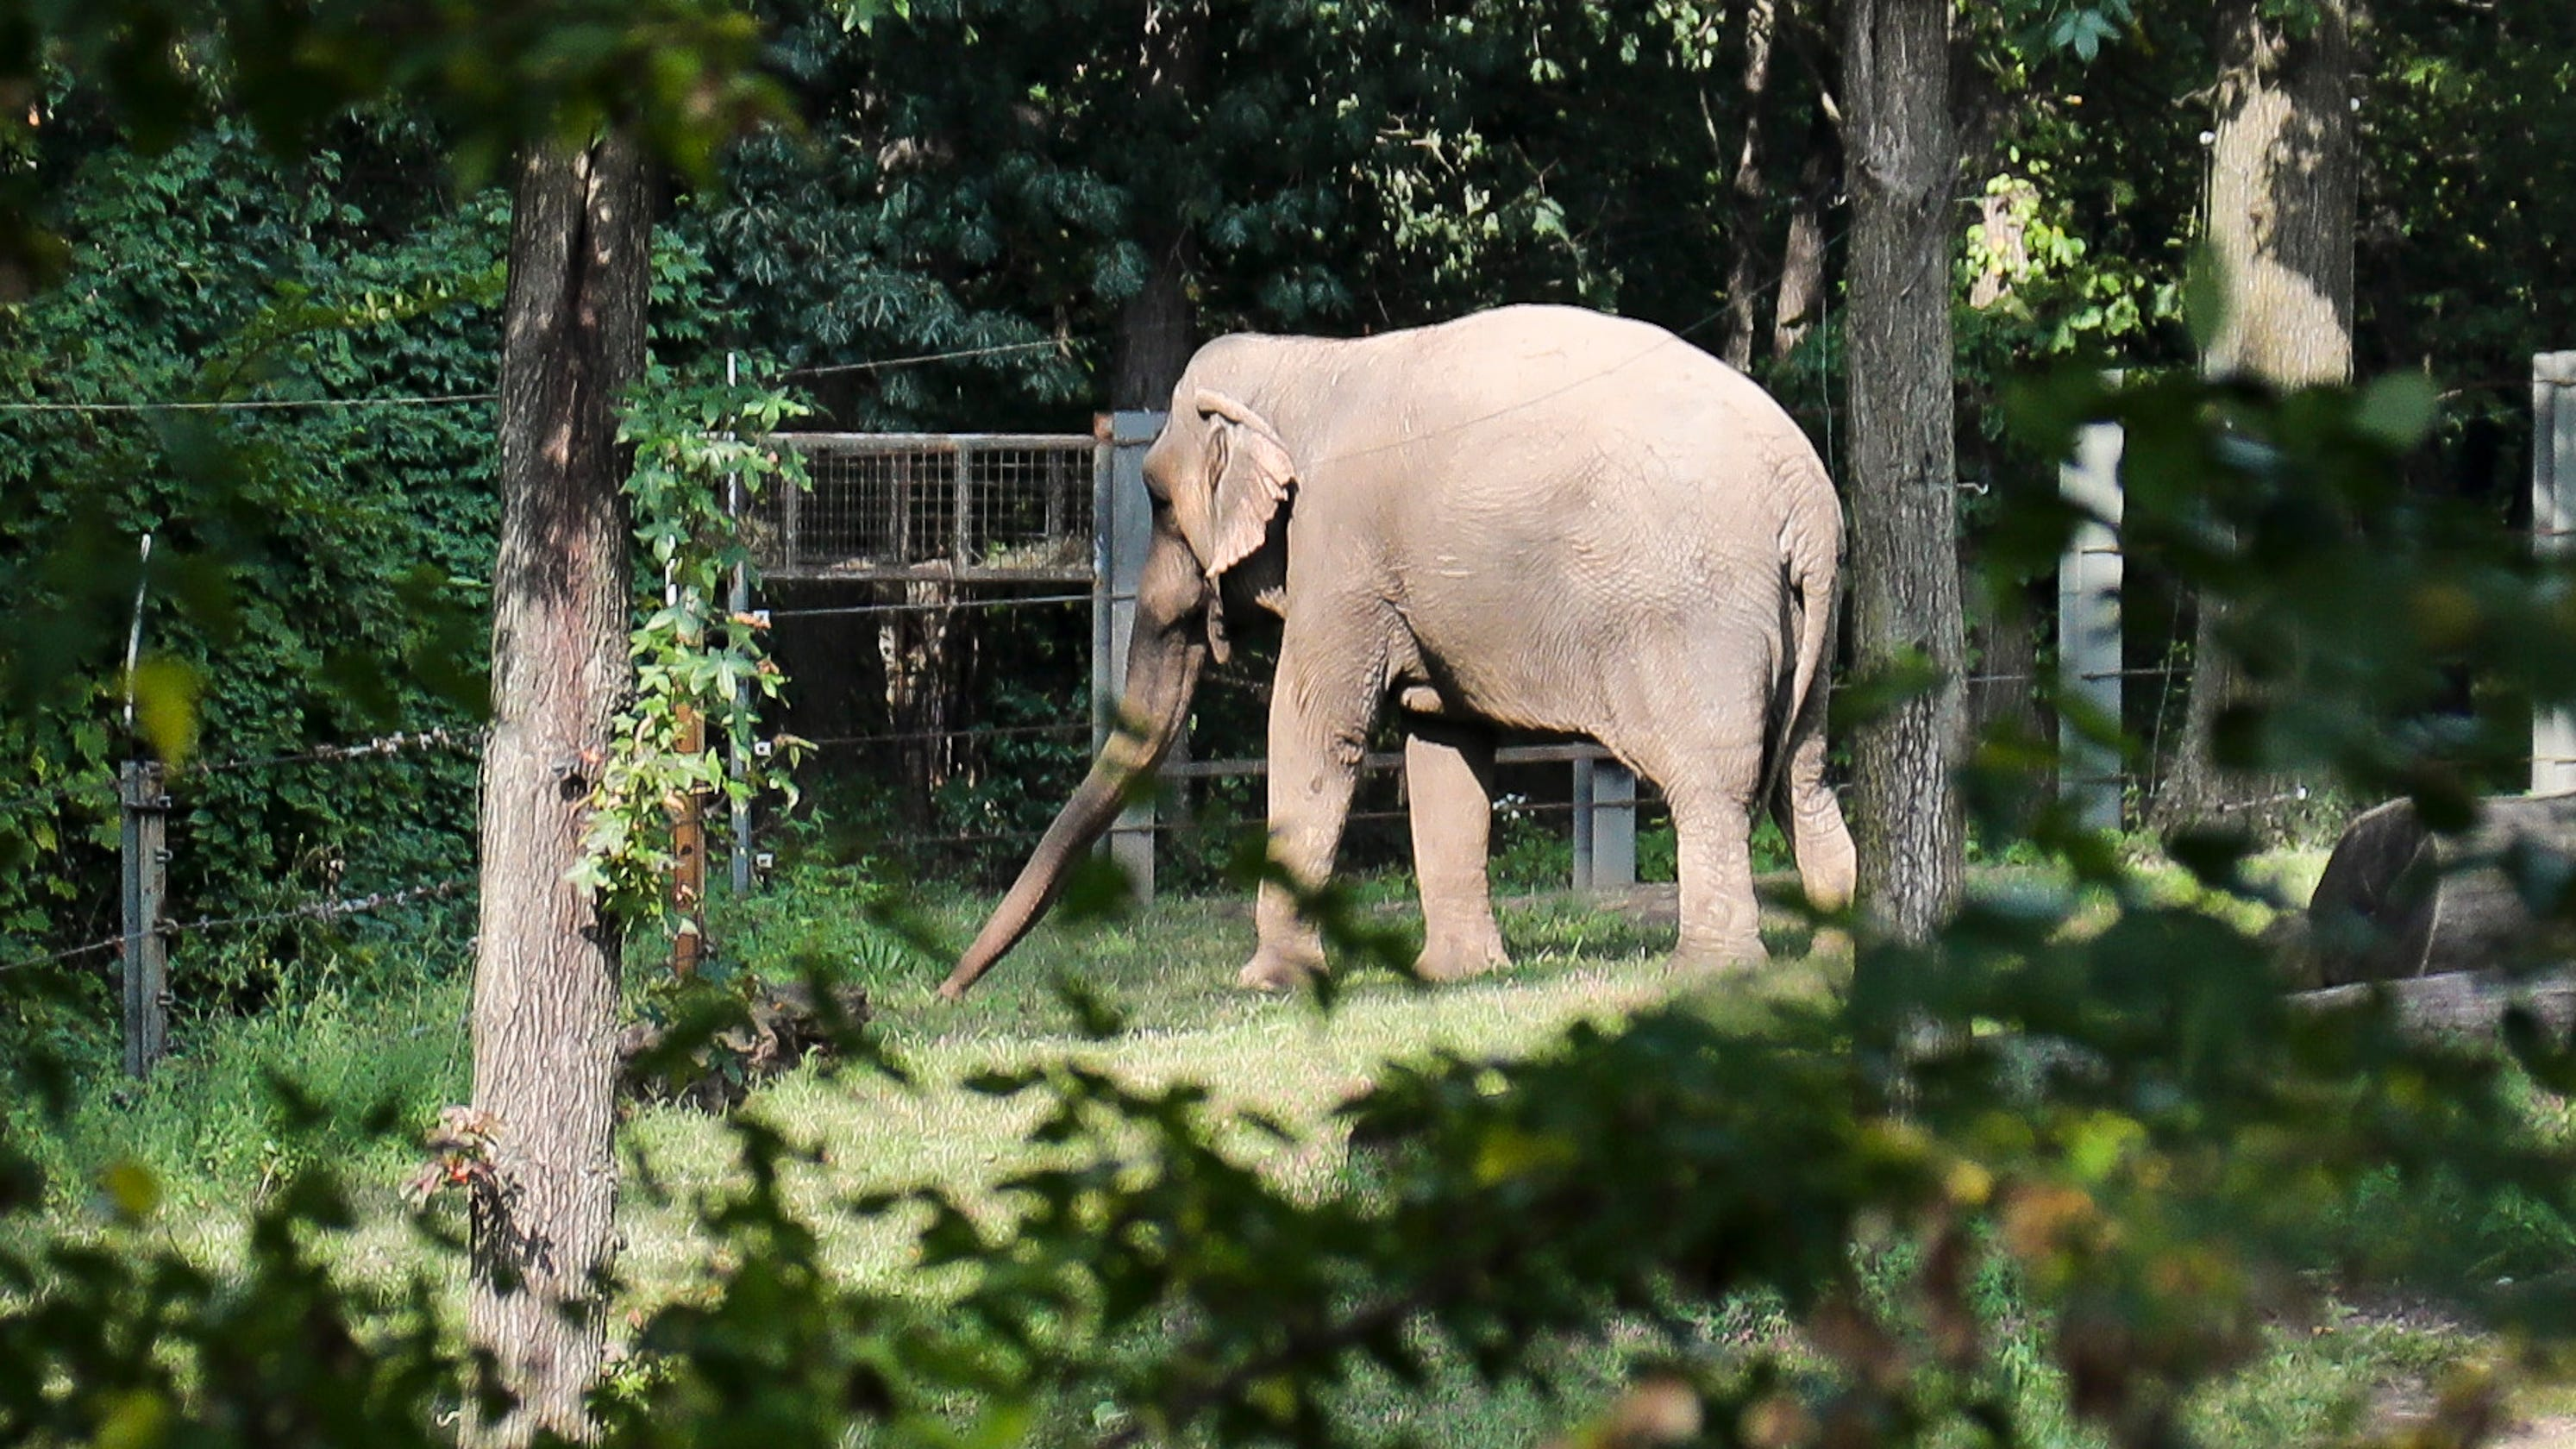 Group Wants Bronx Zoo Elephant Freed Orleans County To Hear Petition